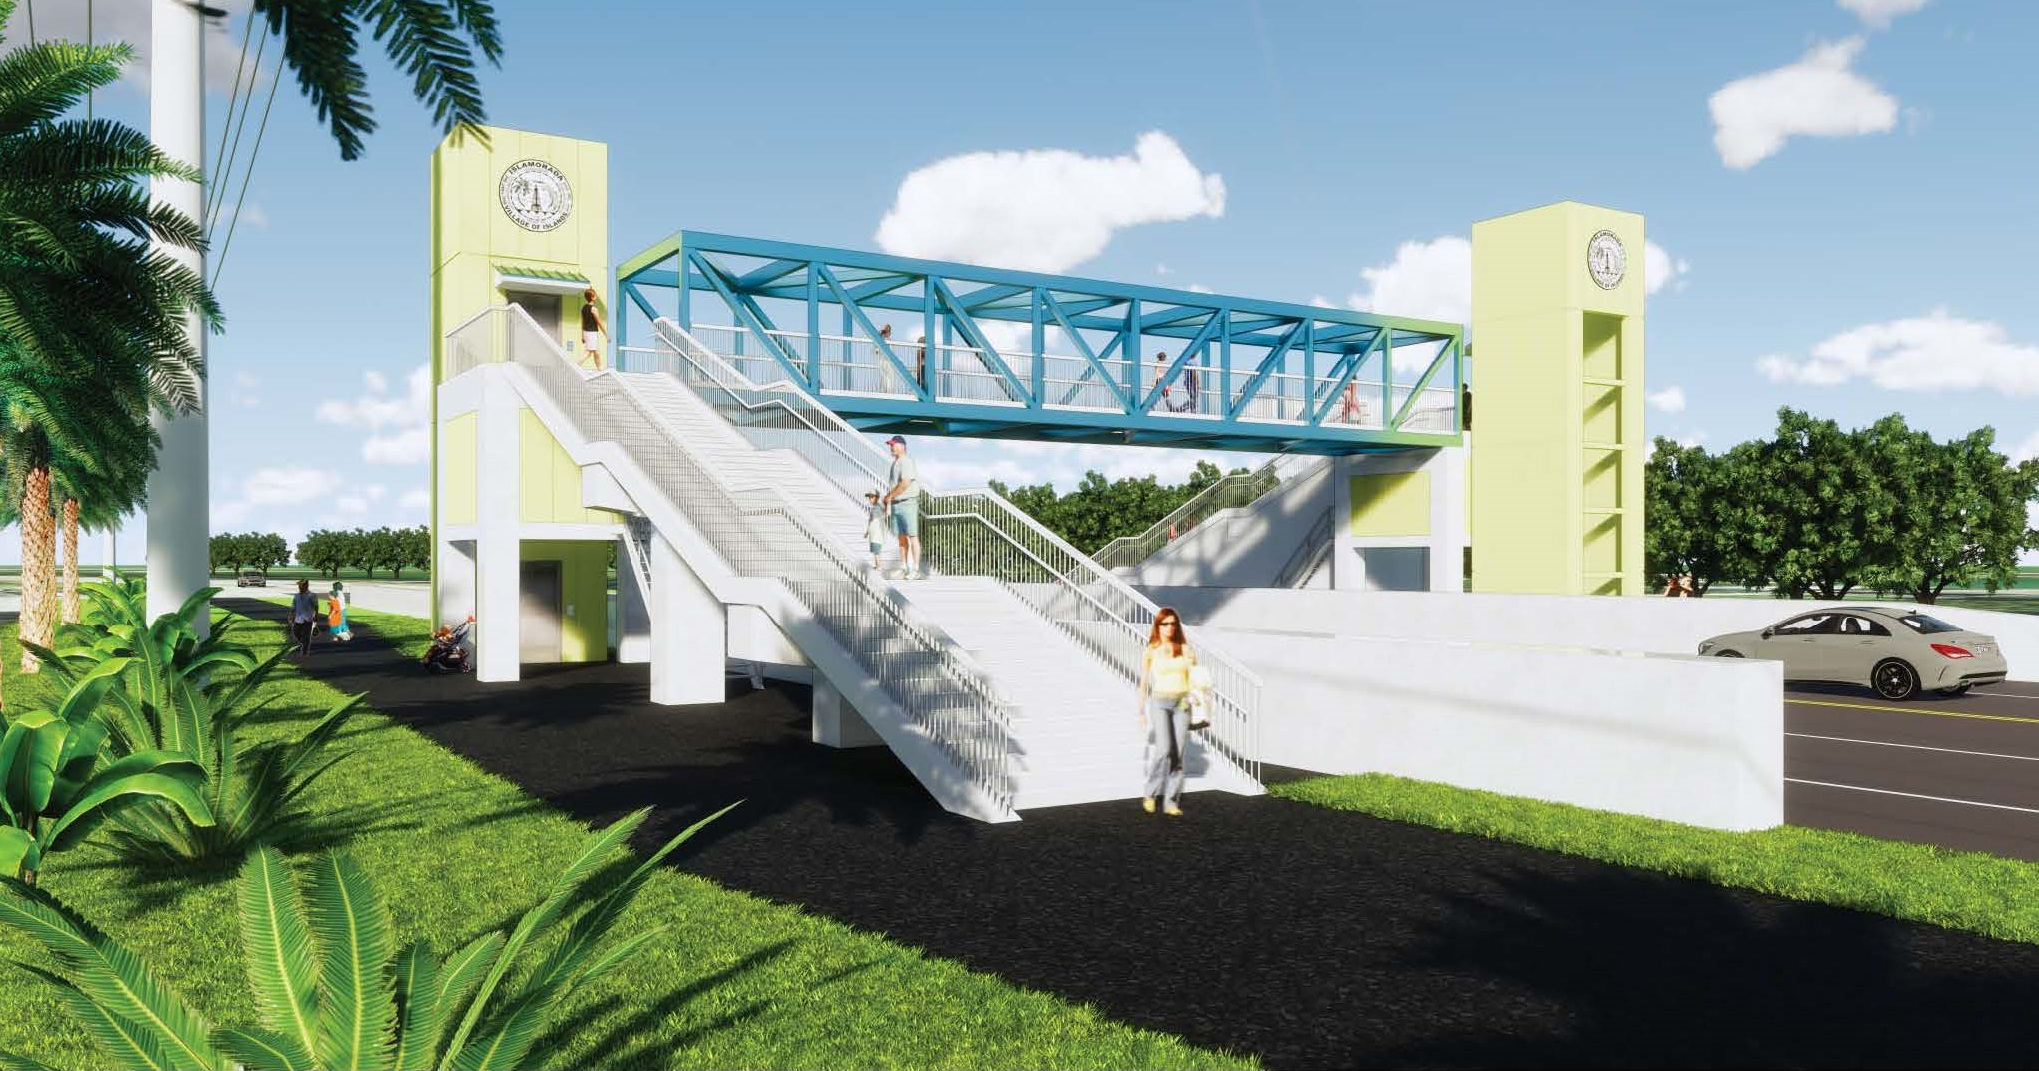 2018-11-27-Islamorada-pedestrian_bridge_design